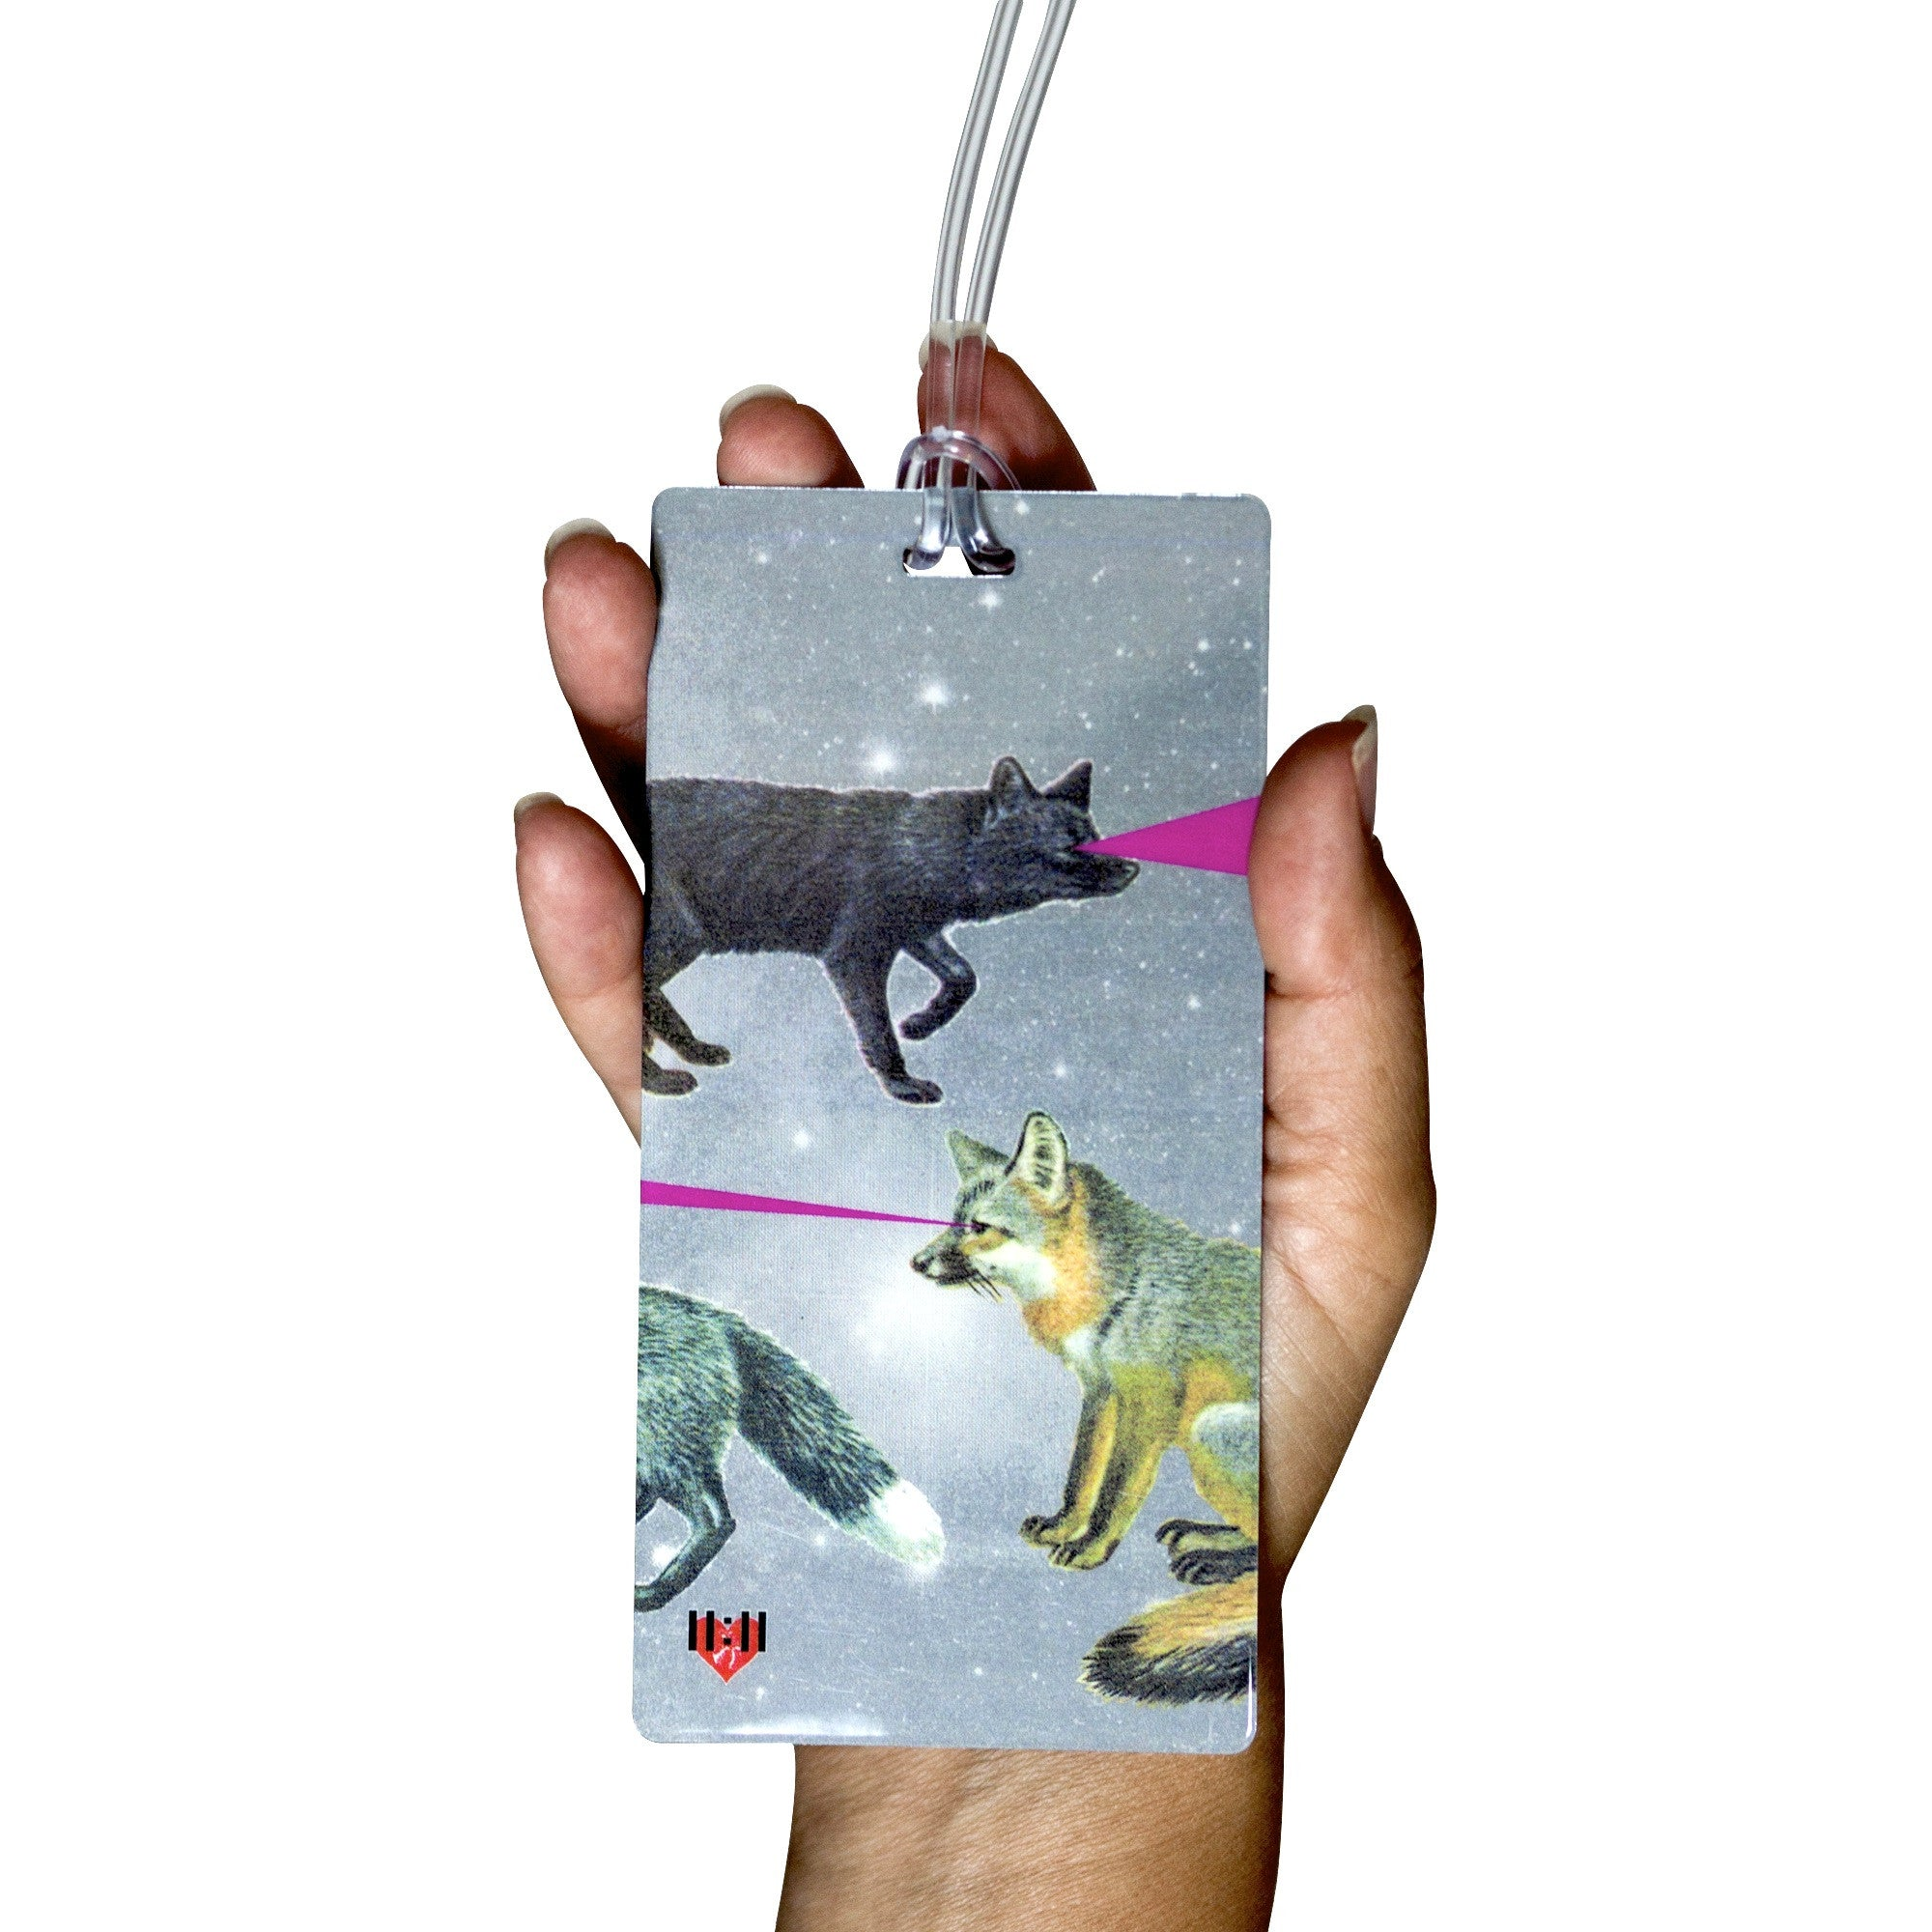 Foxy Lasers Luggage Bag Tag Set - 2 pc, Large by 11:11 Enterprises